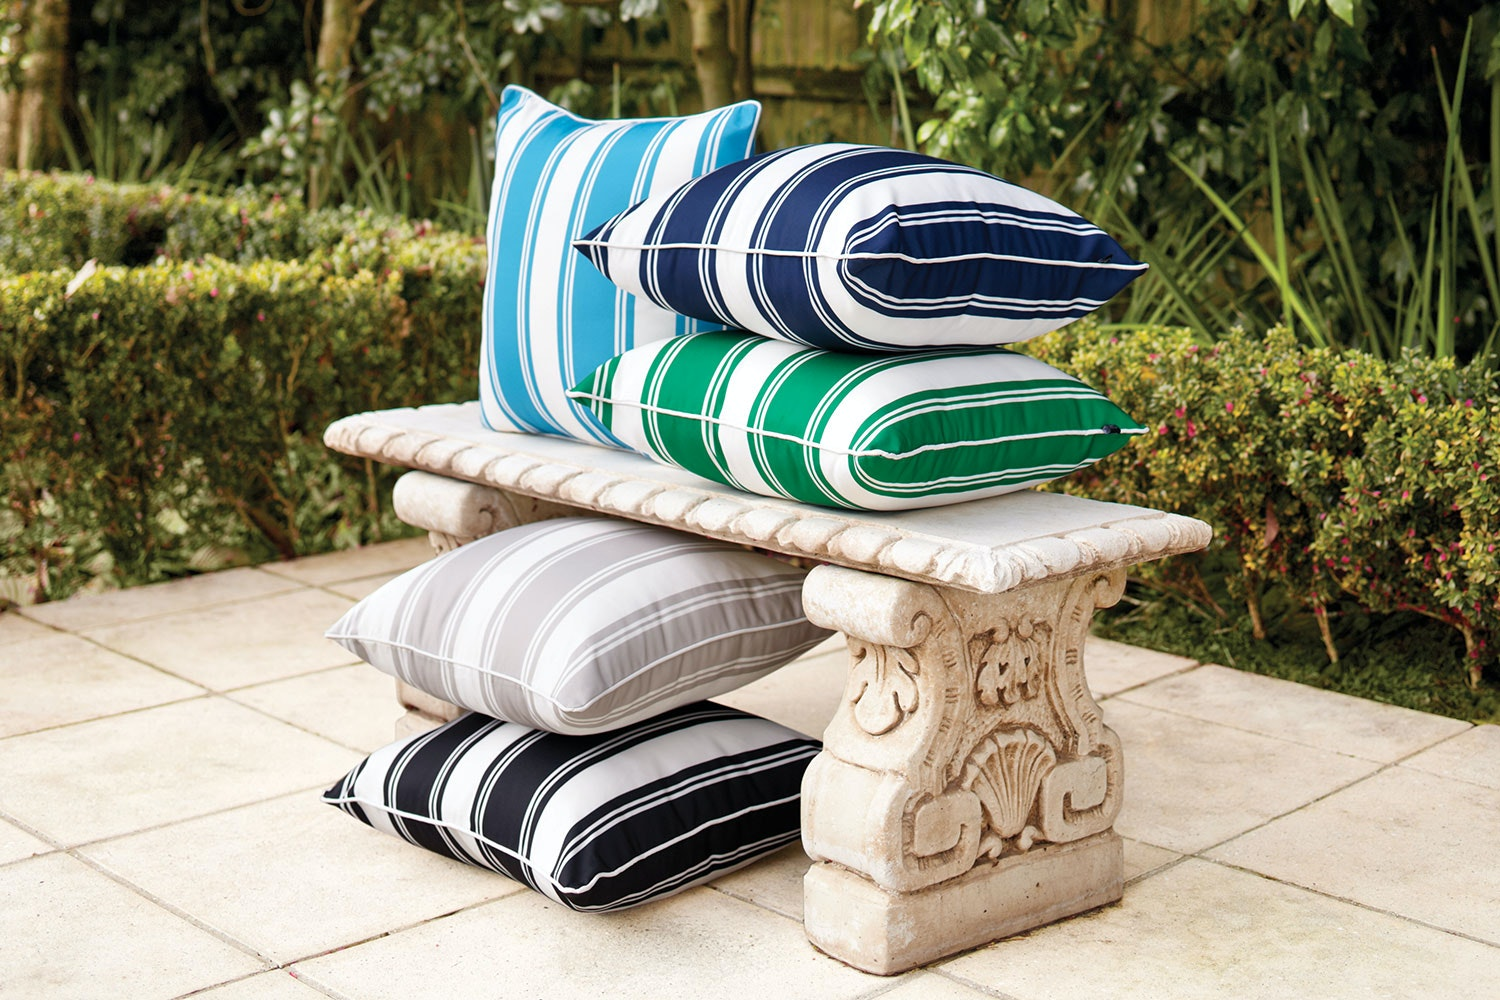 Positano Outdoor Cushion by Rapee